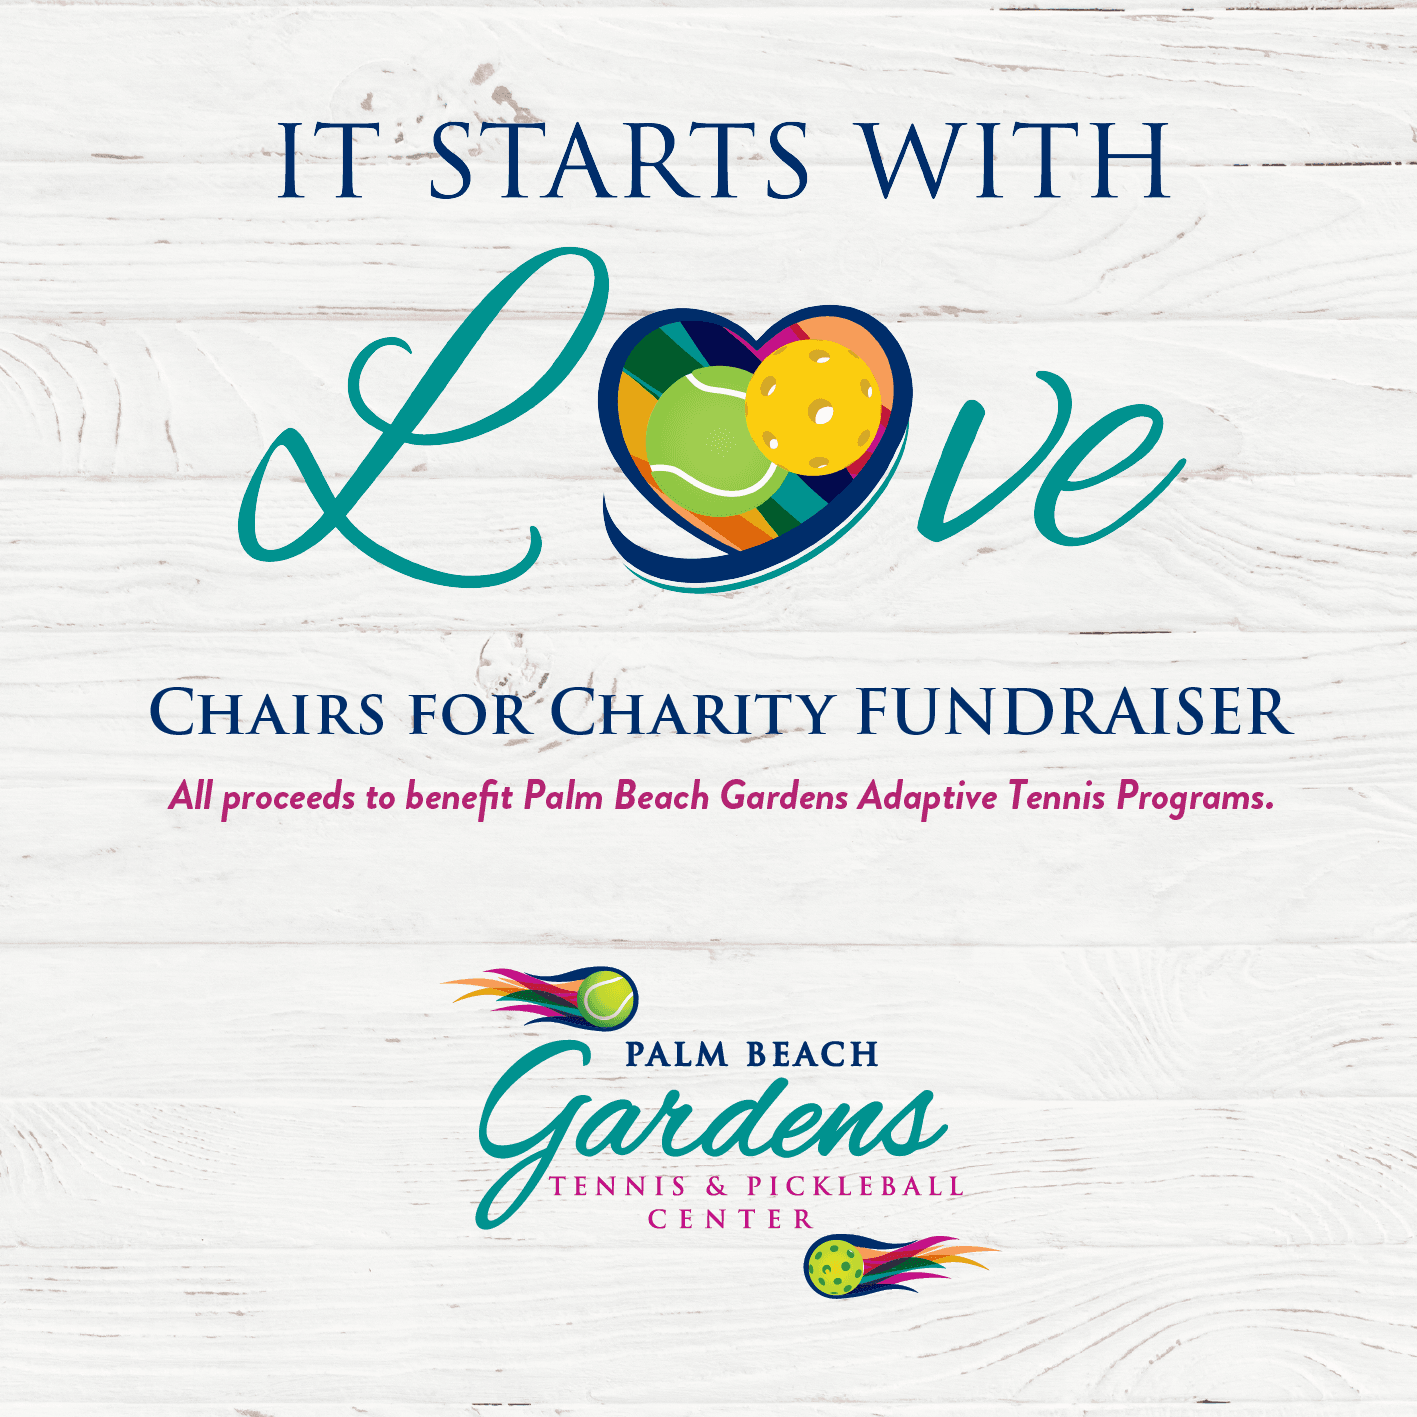 Chairs For Charity virtual fundraiser begins November 19, 2020.